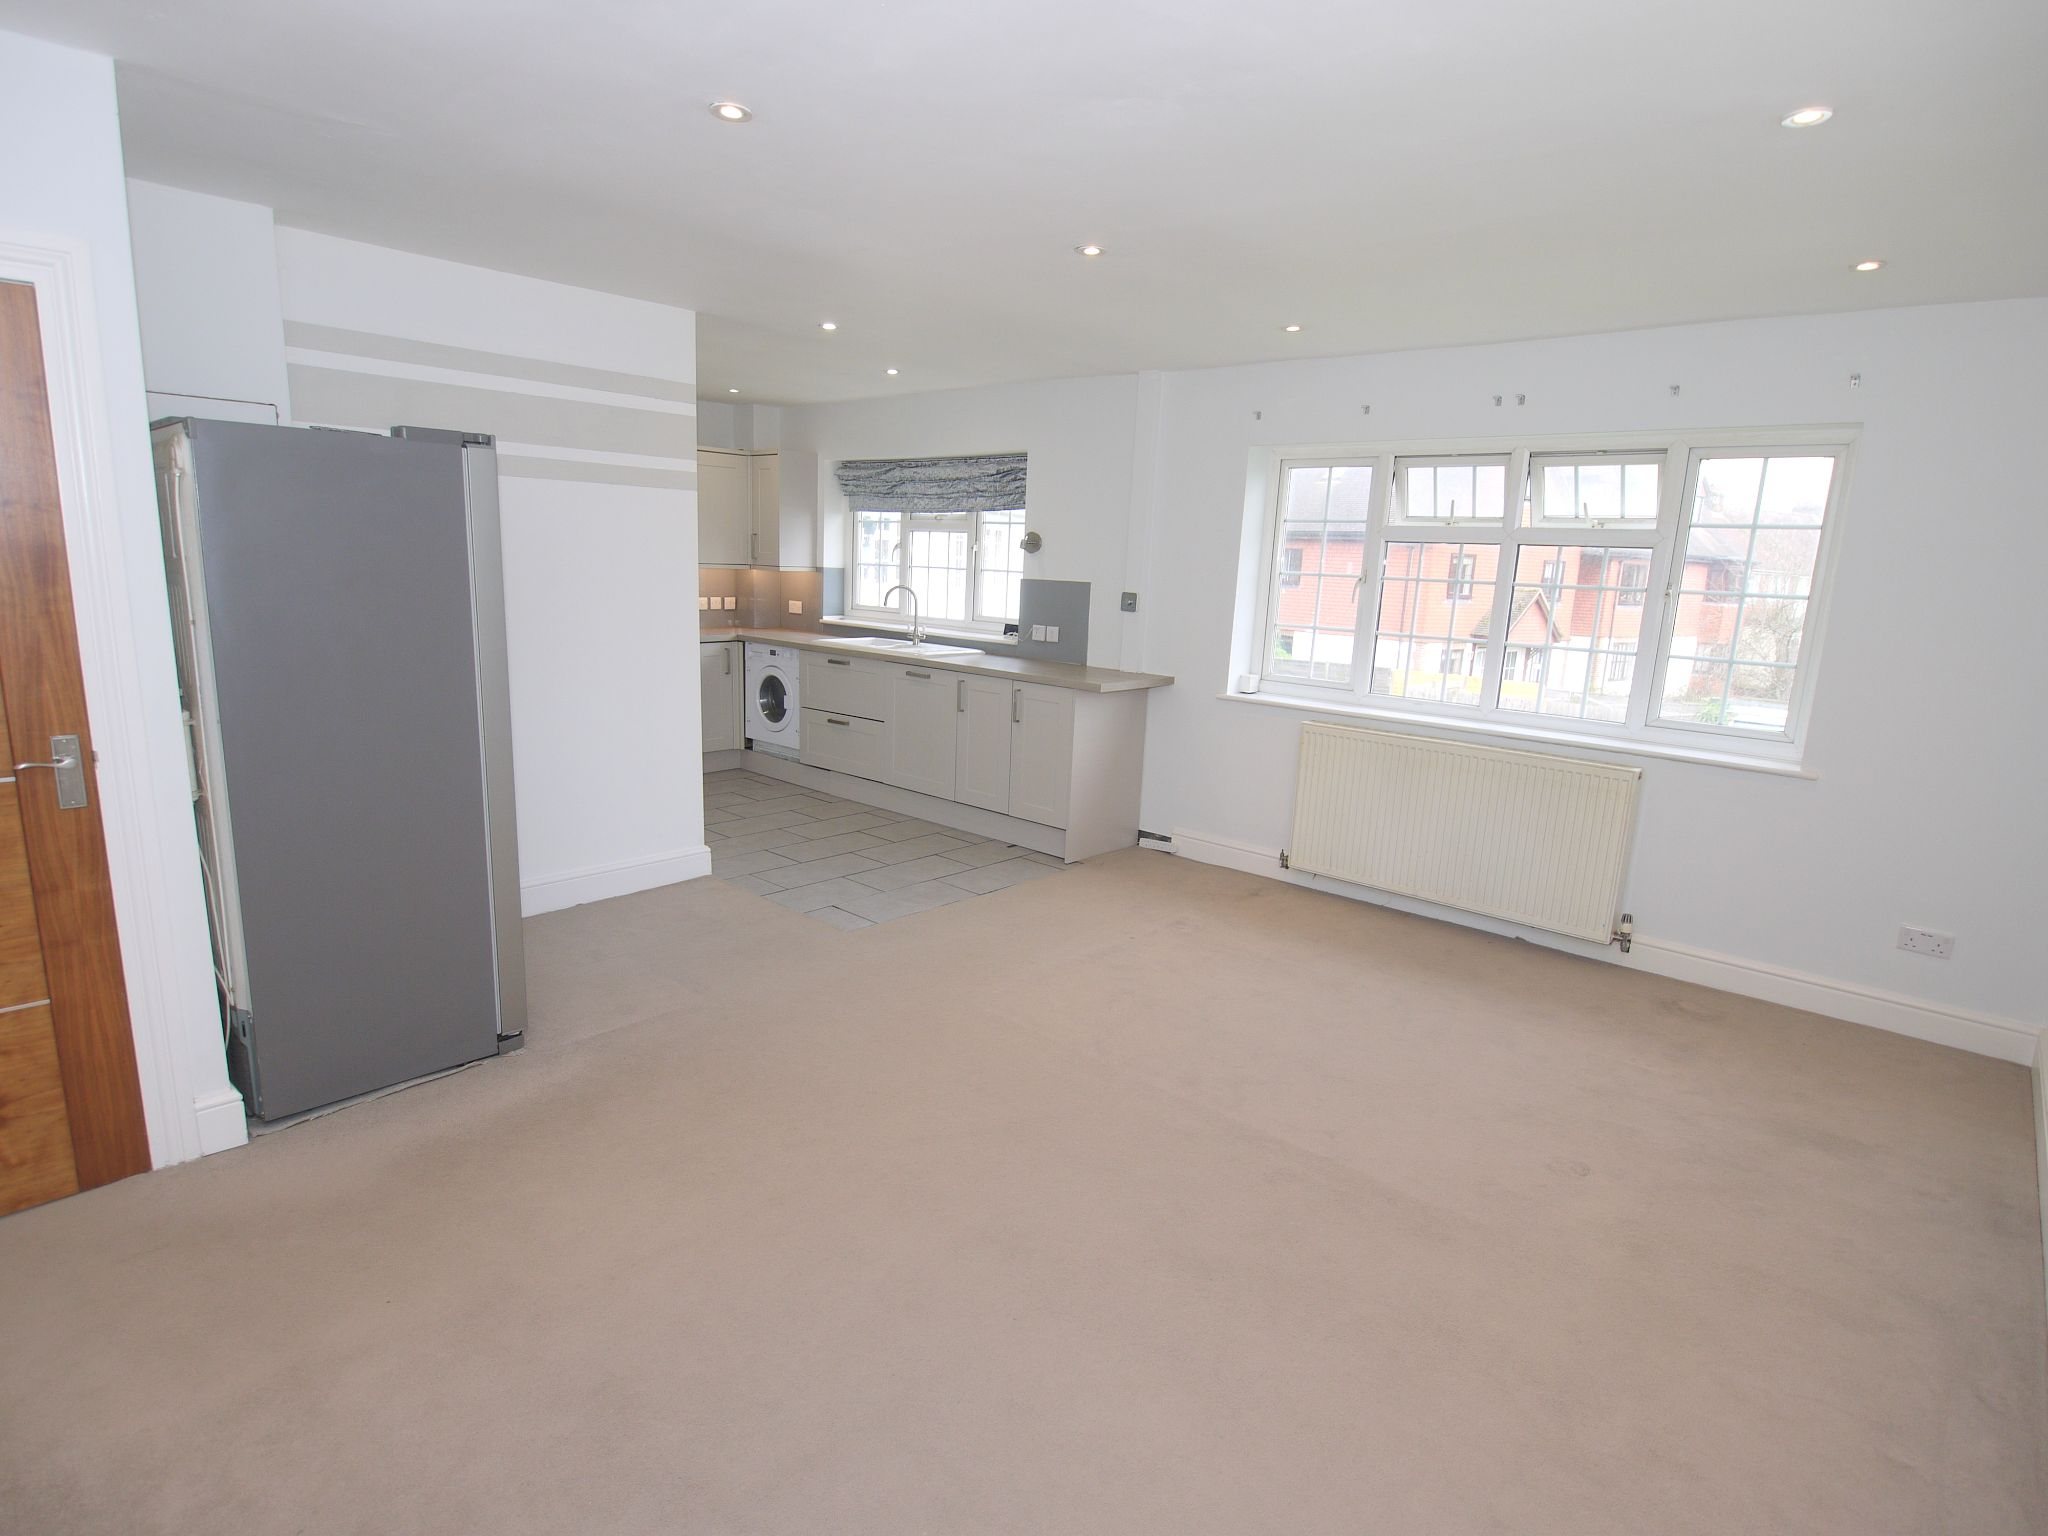 2 bedroom apartment flat/apartment Sale Agreed in Sevenoaks - Photograph 3